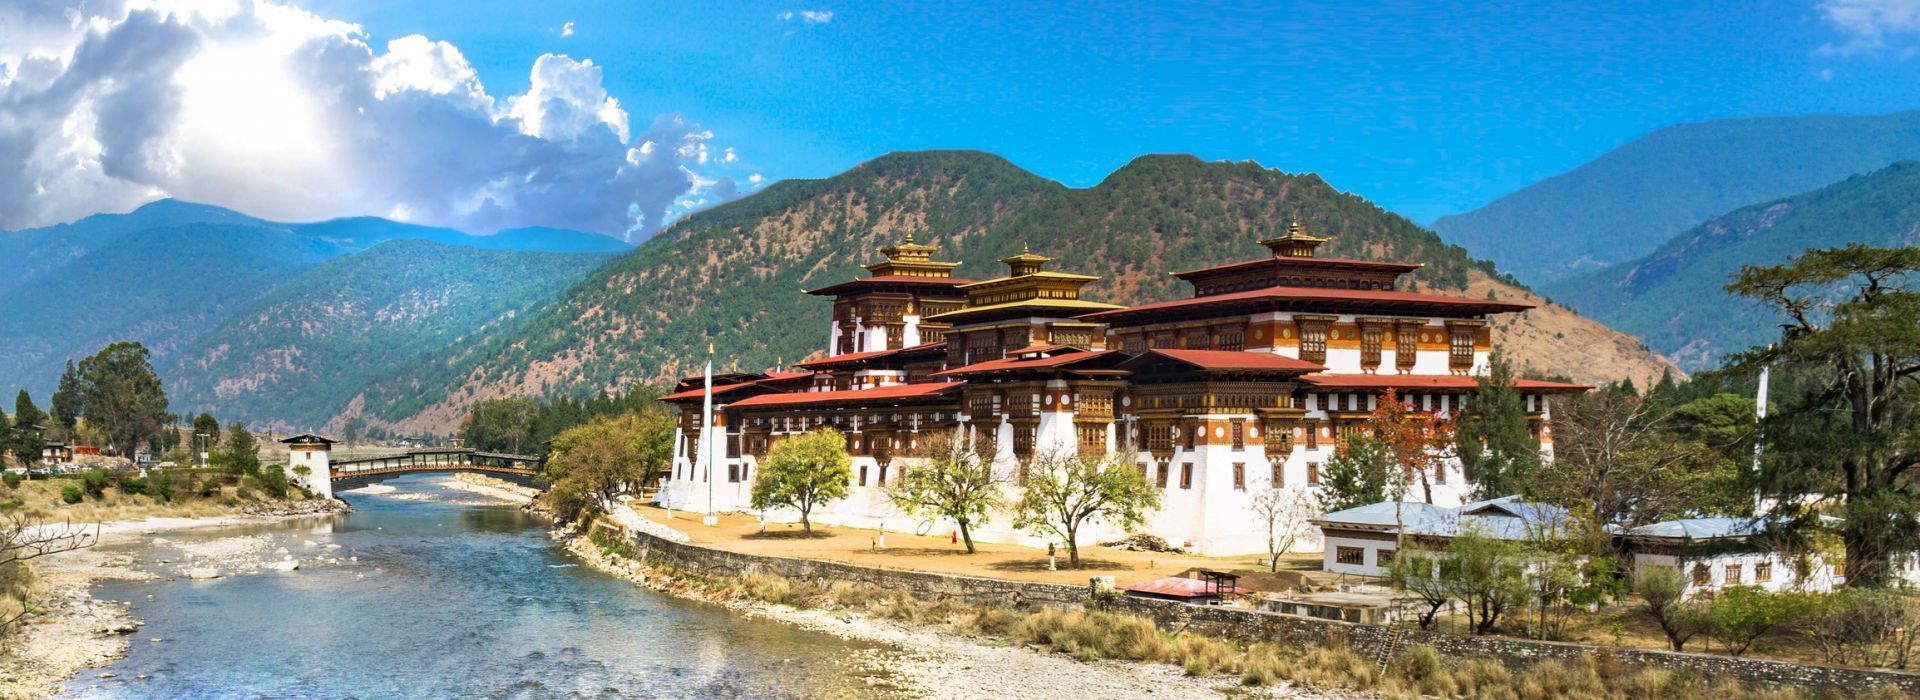 Cultural, religious and historic sites Tours in Paro